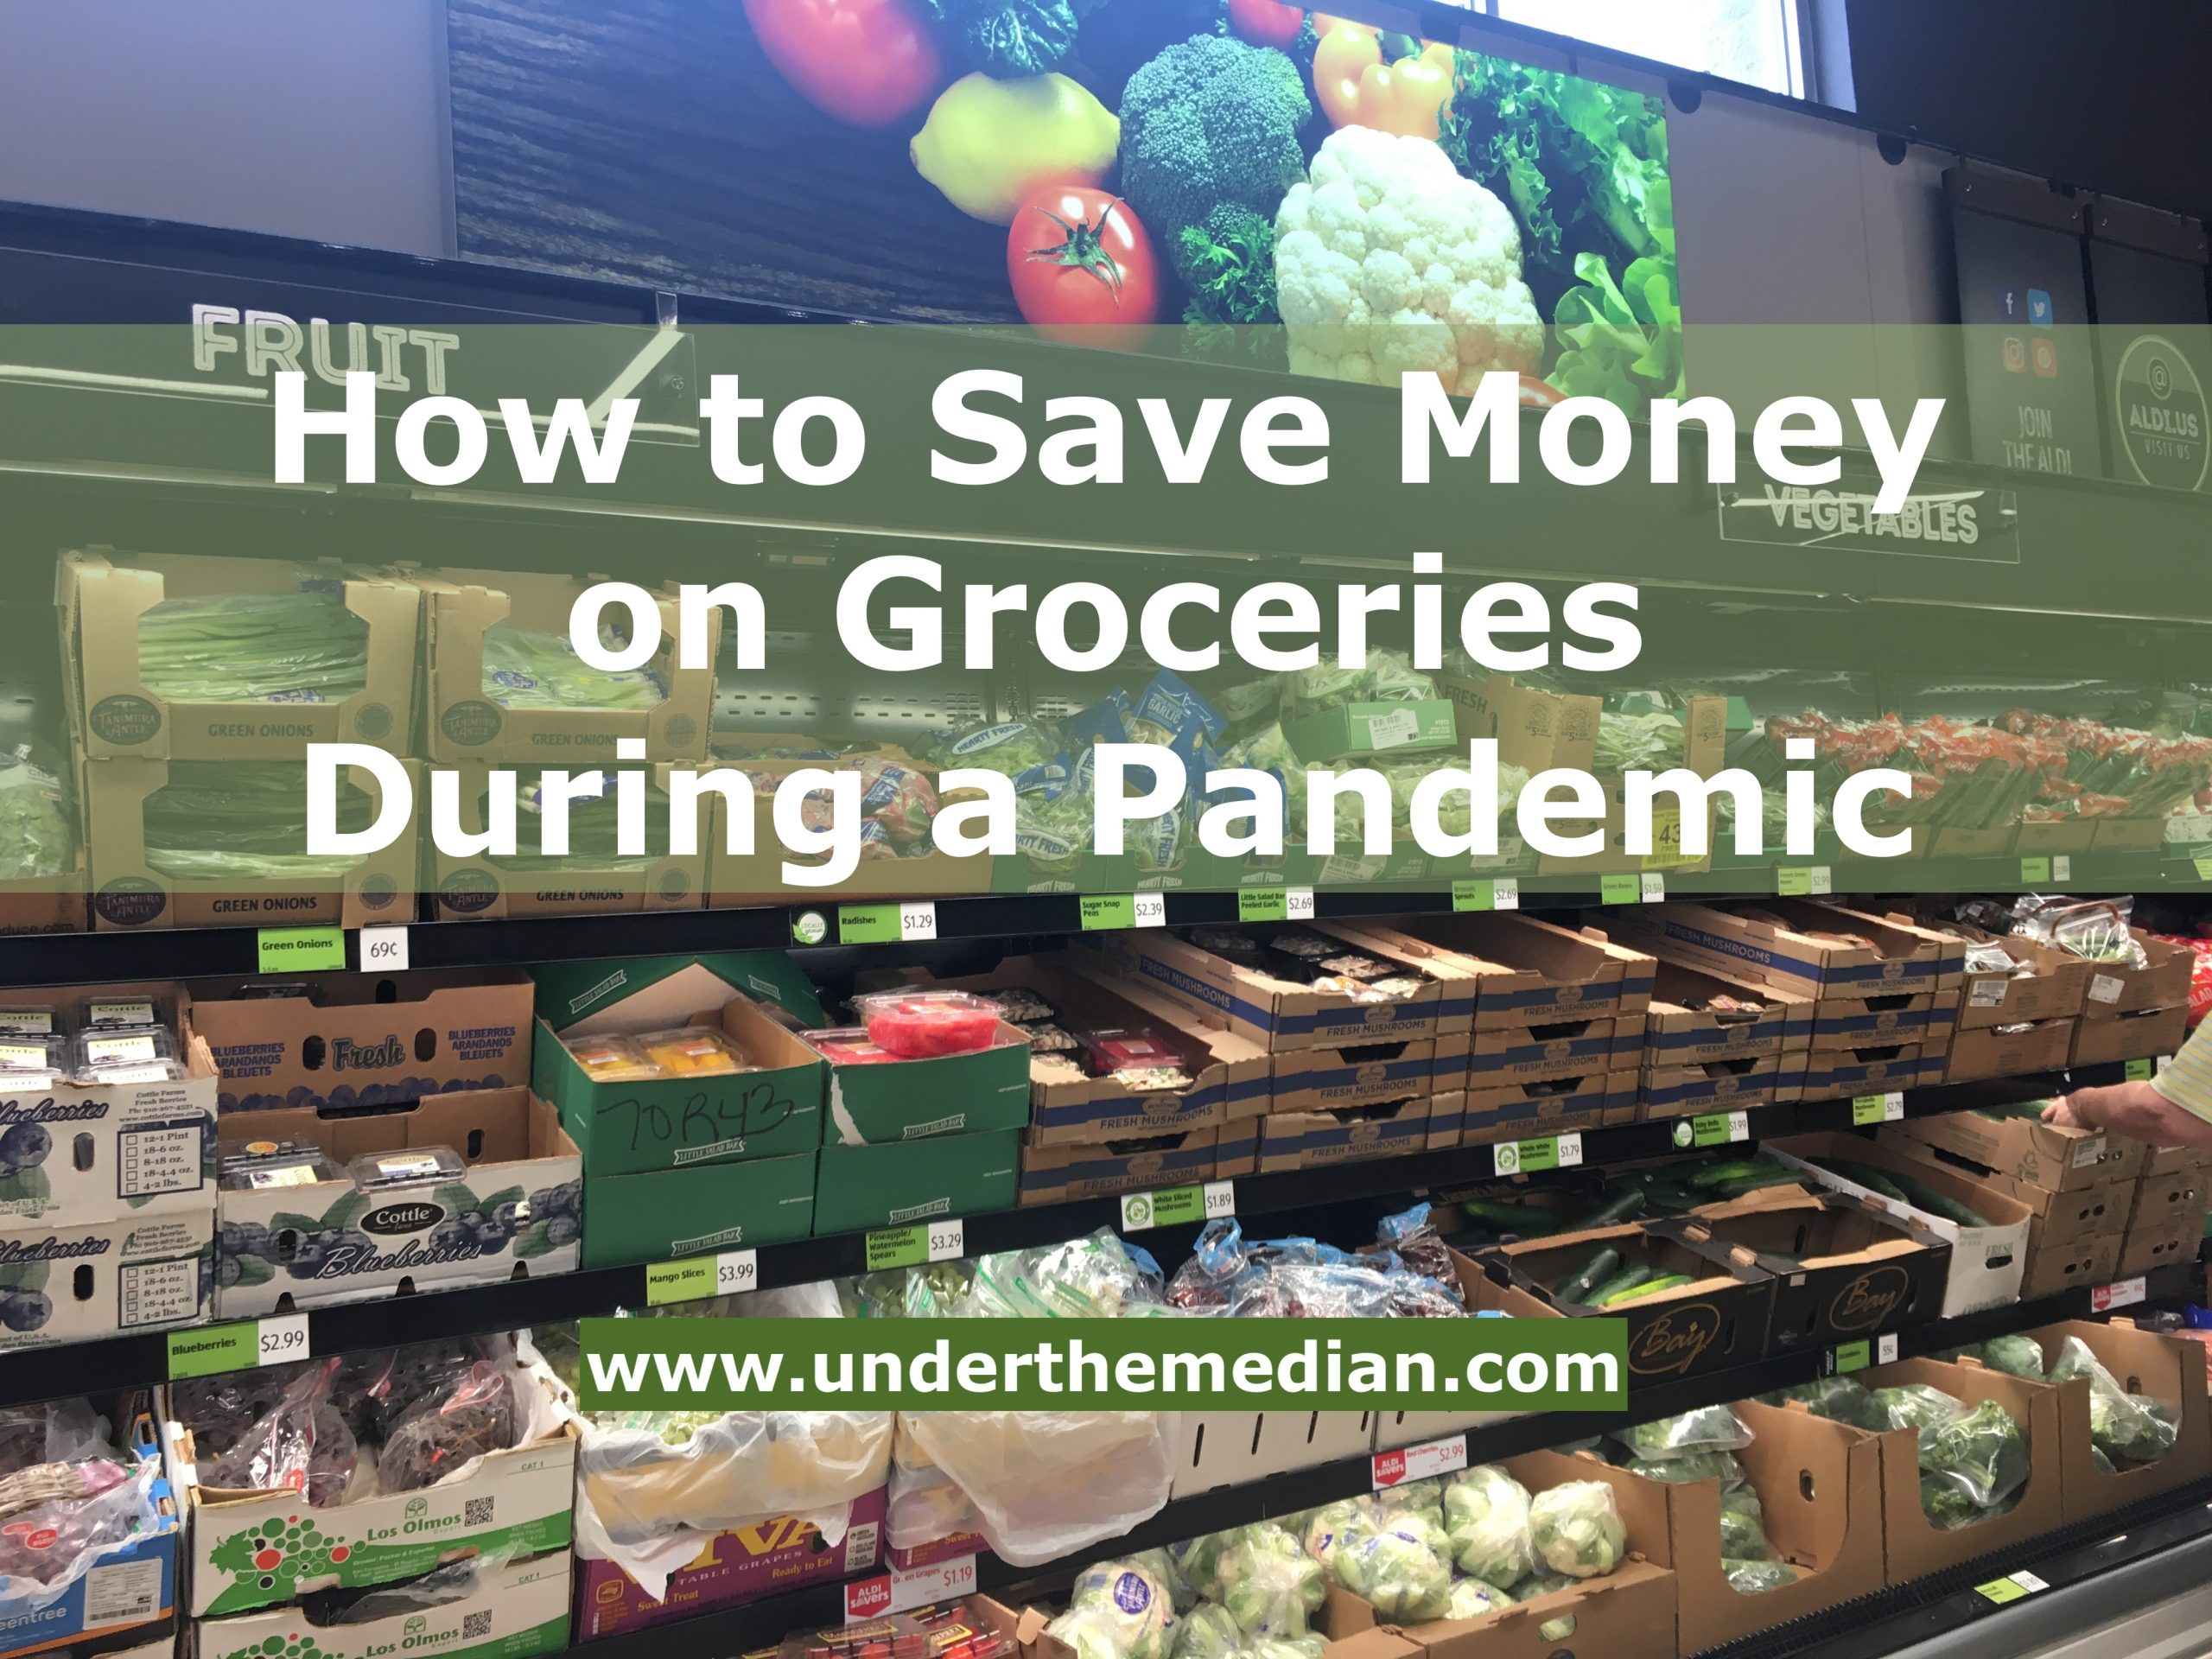 How to Save Money on Groceries During a Pandemic